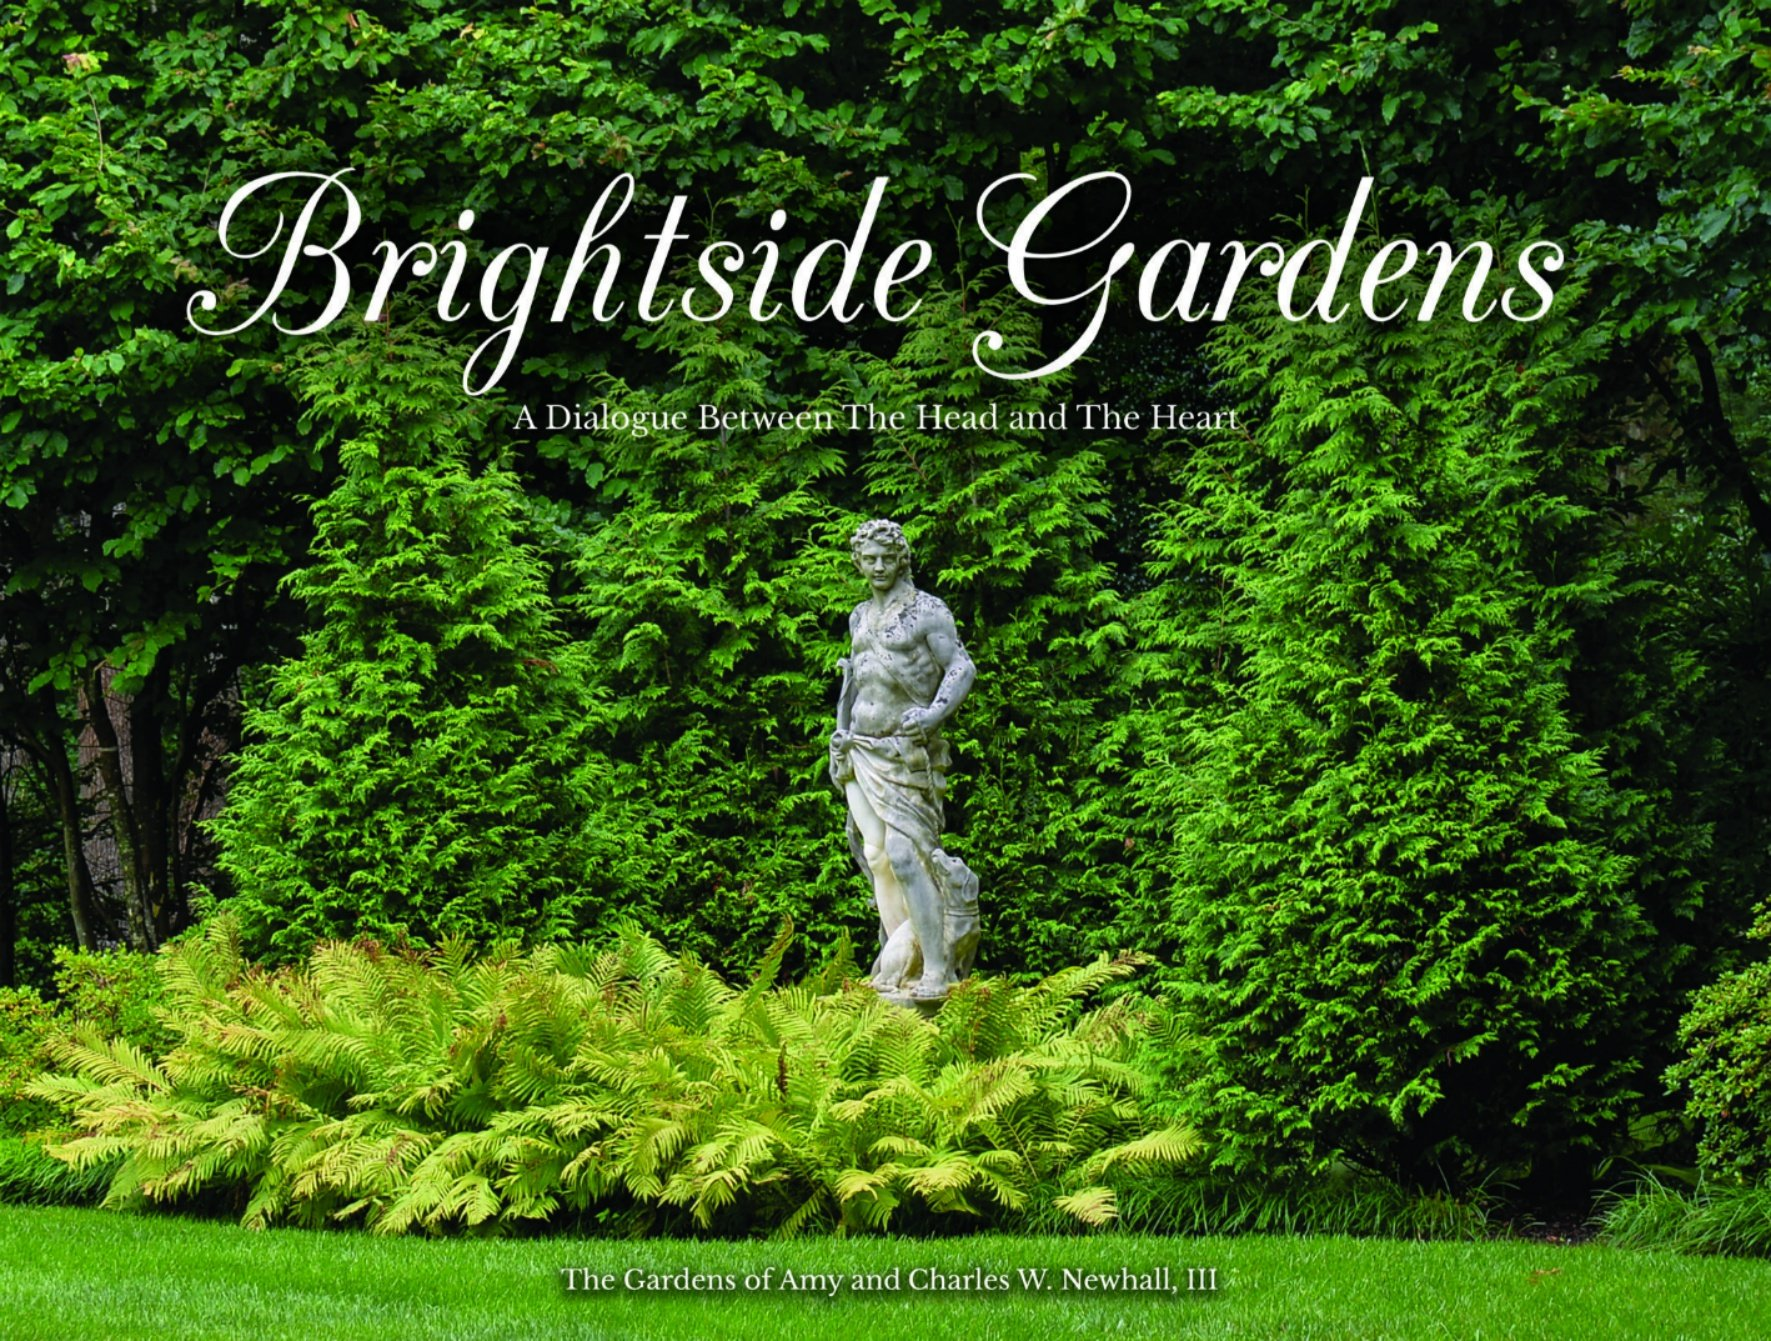 Brightside gardens a dialogue between the head and the heart